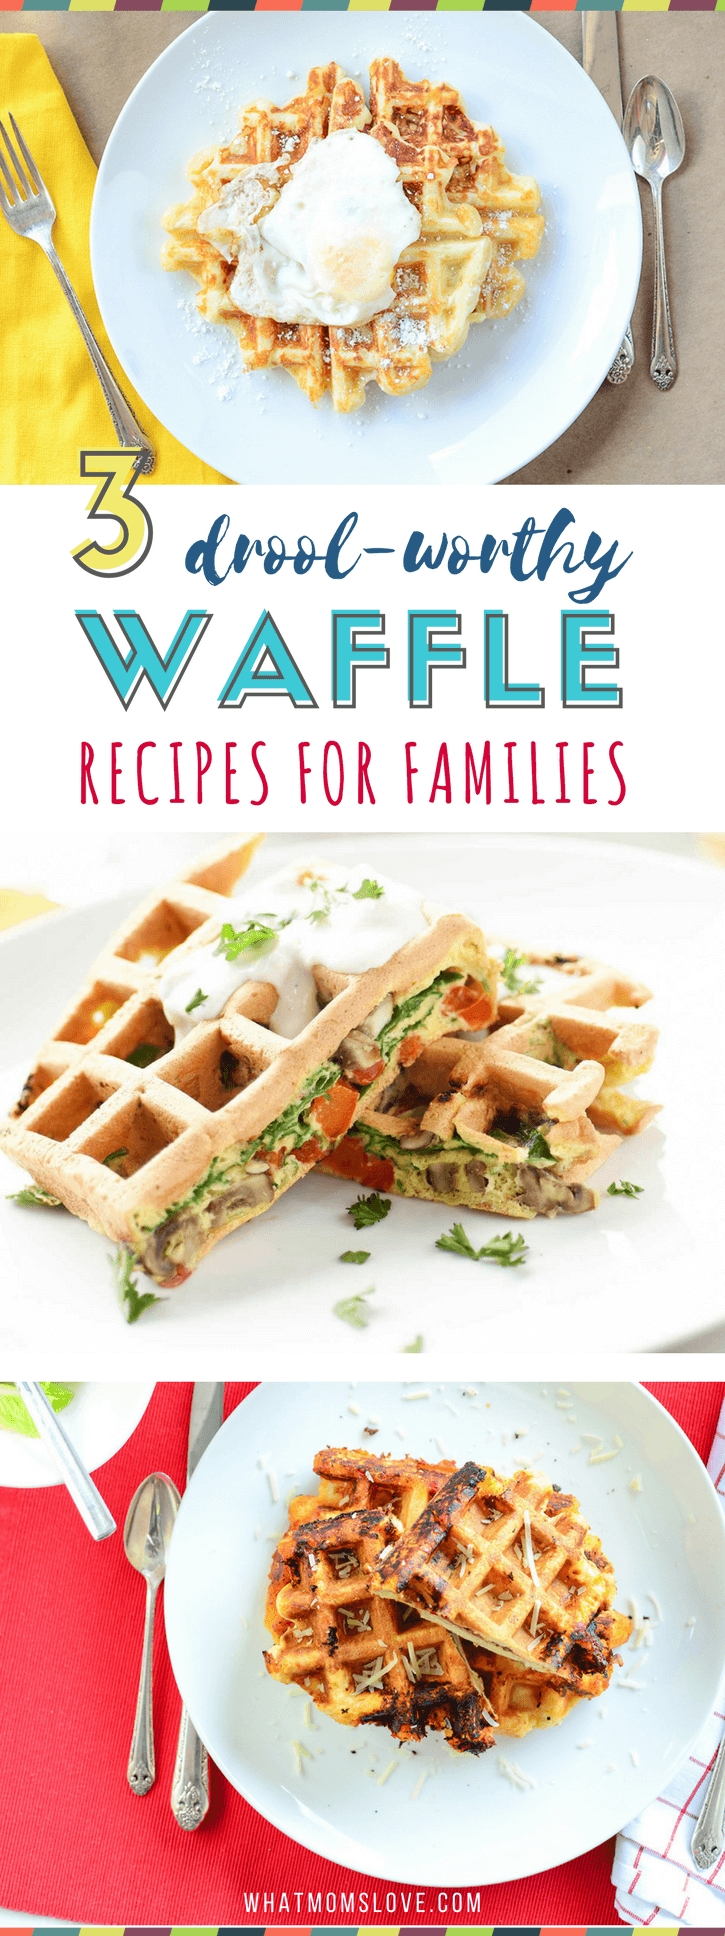 10 Fabulous Easy Dinner Ideas For Picky Eaters waffles for dinner 3 insanely easy delicious recipes your 2021